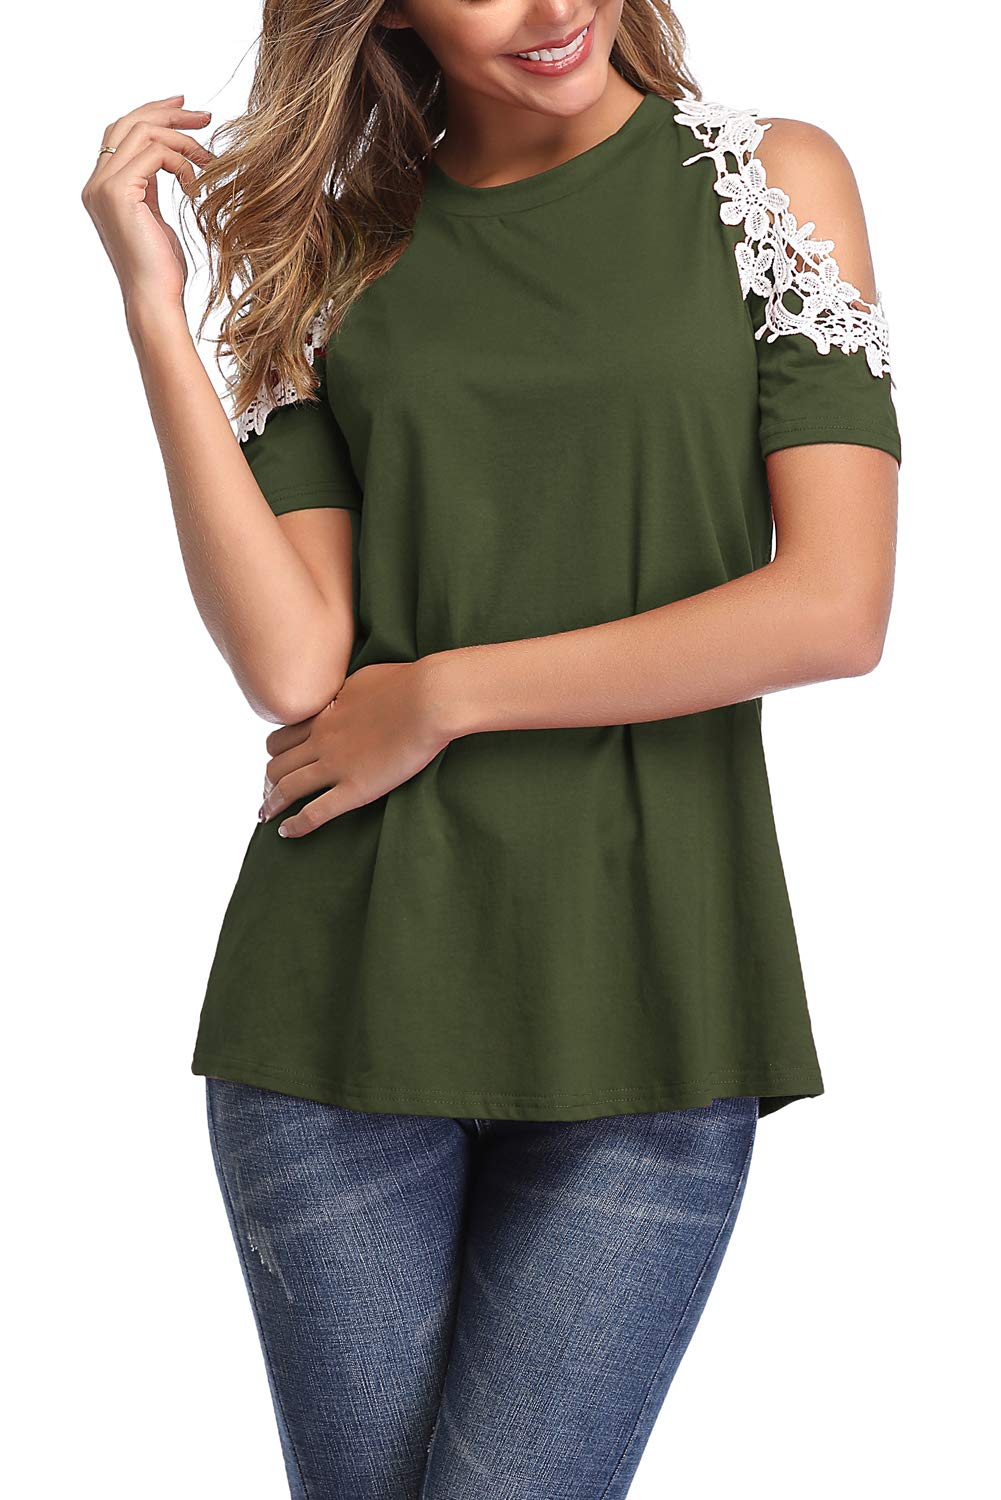 Donnalla Womens Summer Casual Tops Lace Cold Shoulder Short Sleeve Loose Blouse Shirt(Army Green XX-Large)